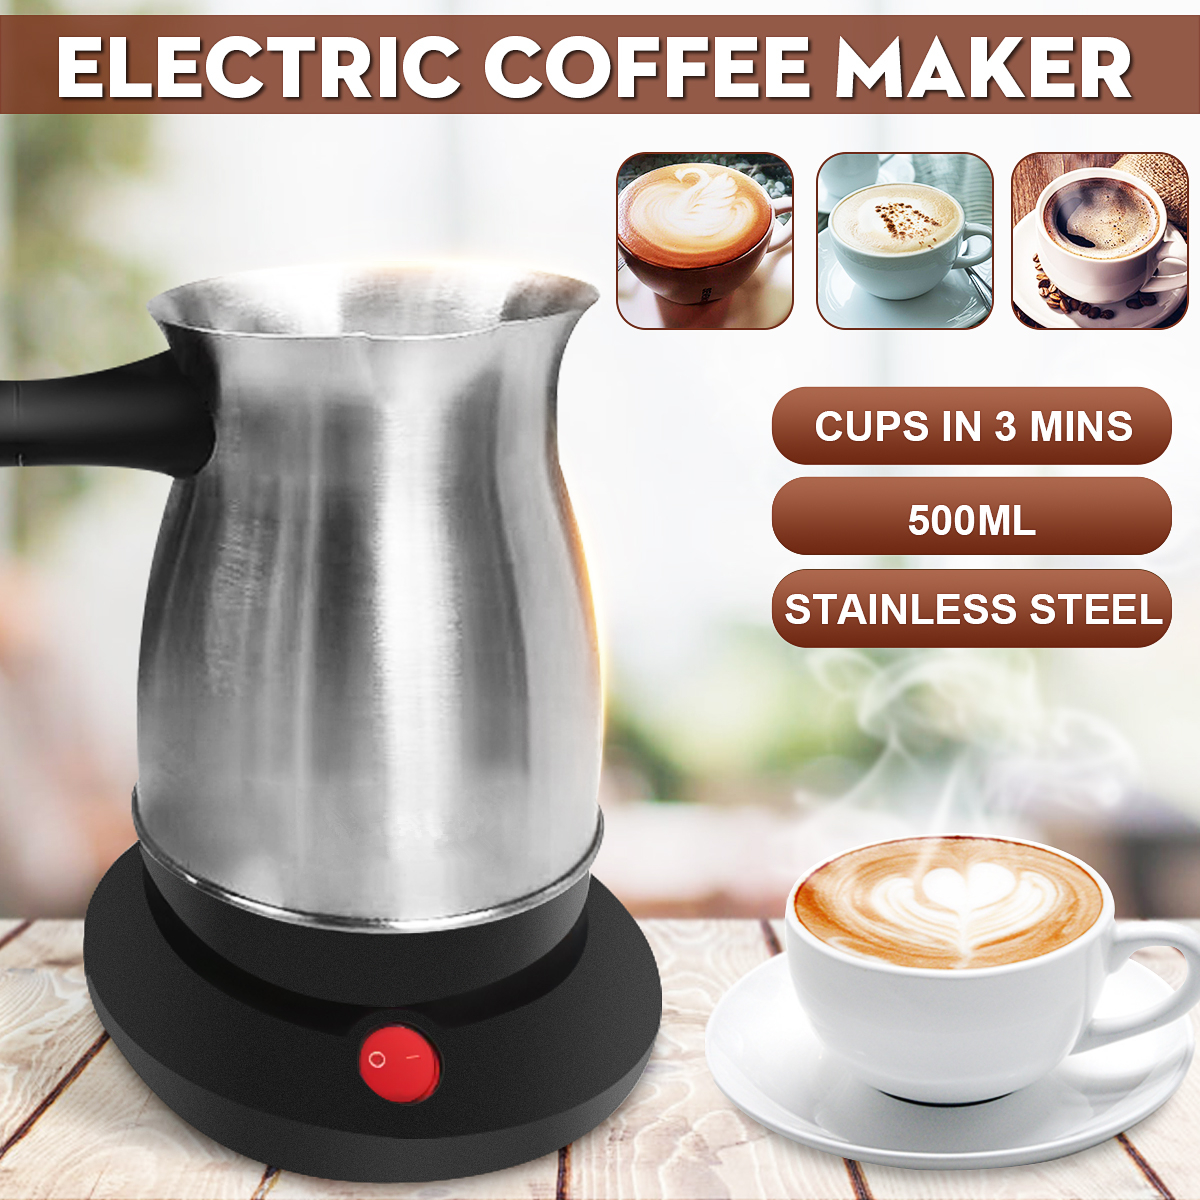 600W 220V Coffee Machine 304 Stainless Steel Turkey Coffee Maker Electrical Coffee Pot Coffee Kettle for home office|Coffee Makers| |  - title=